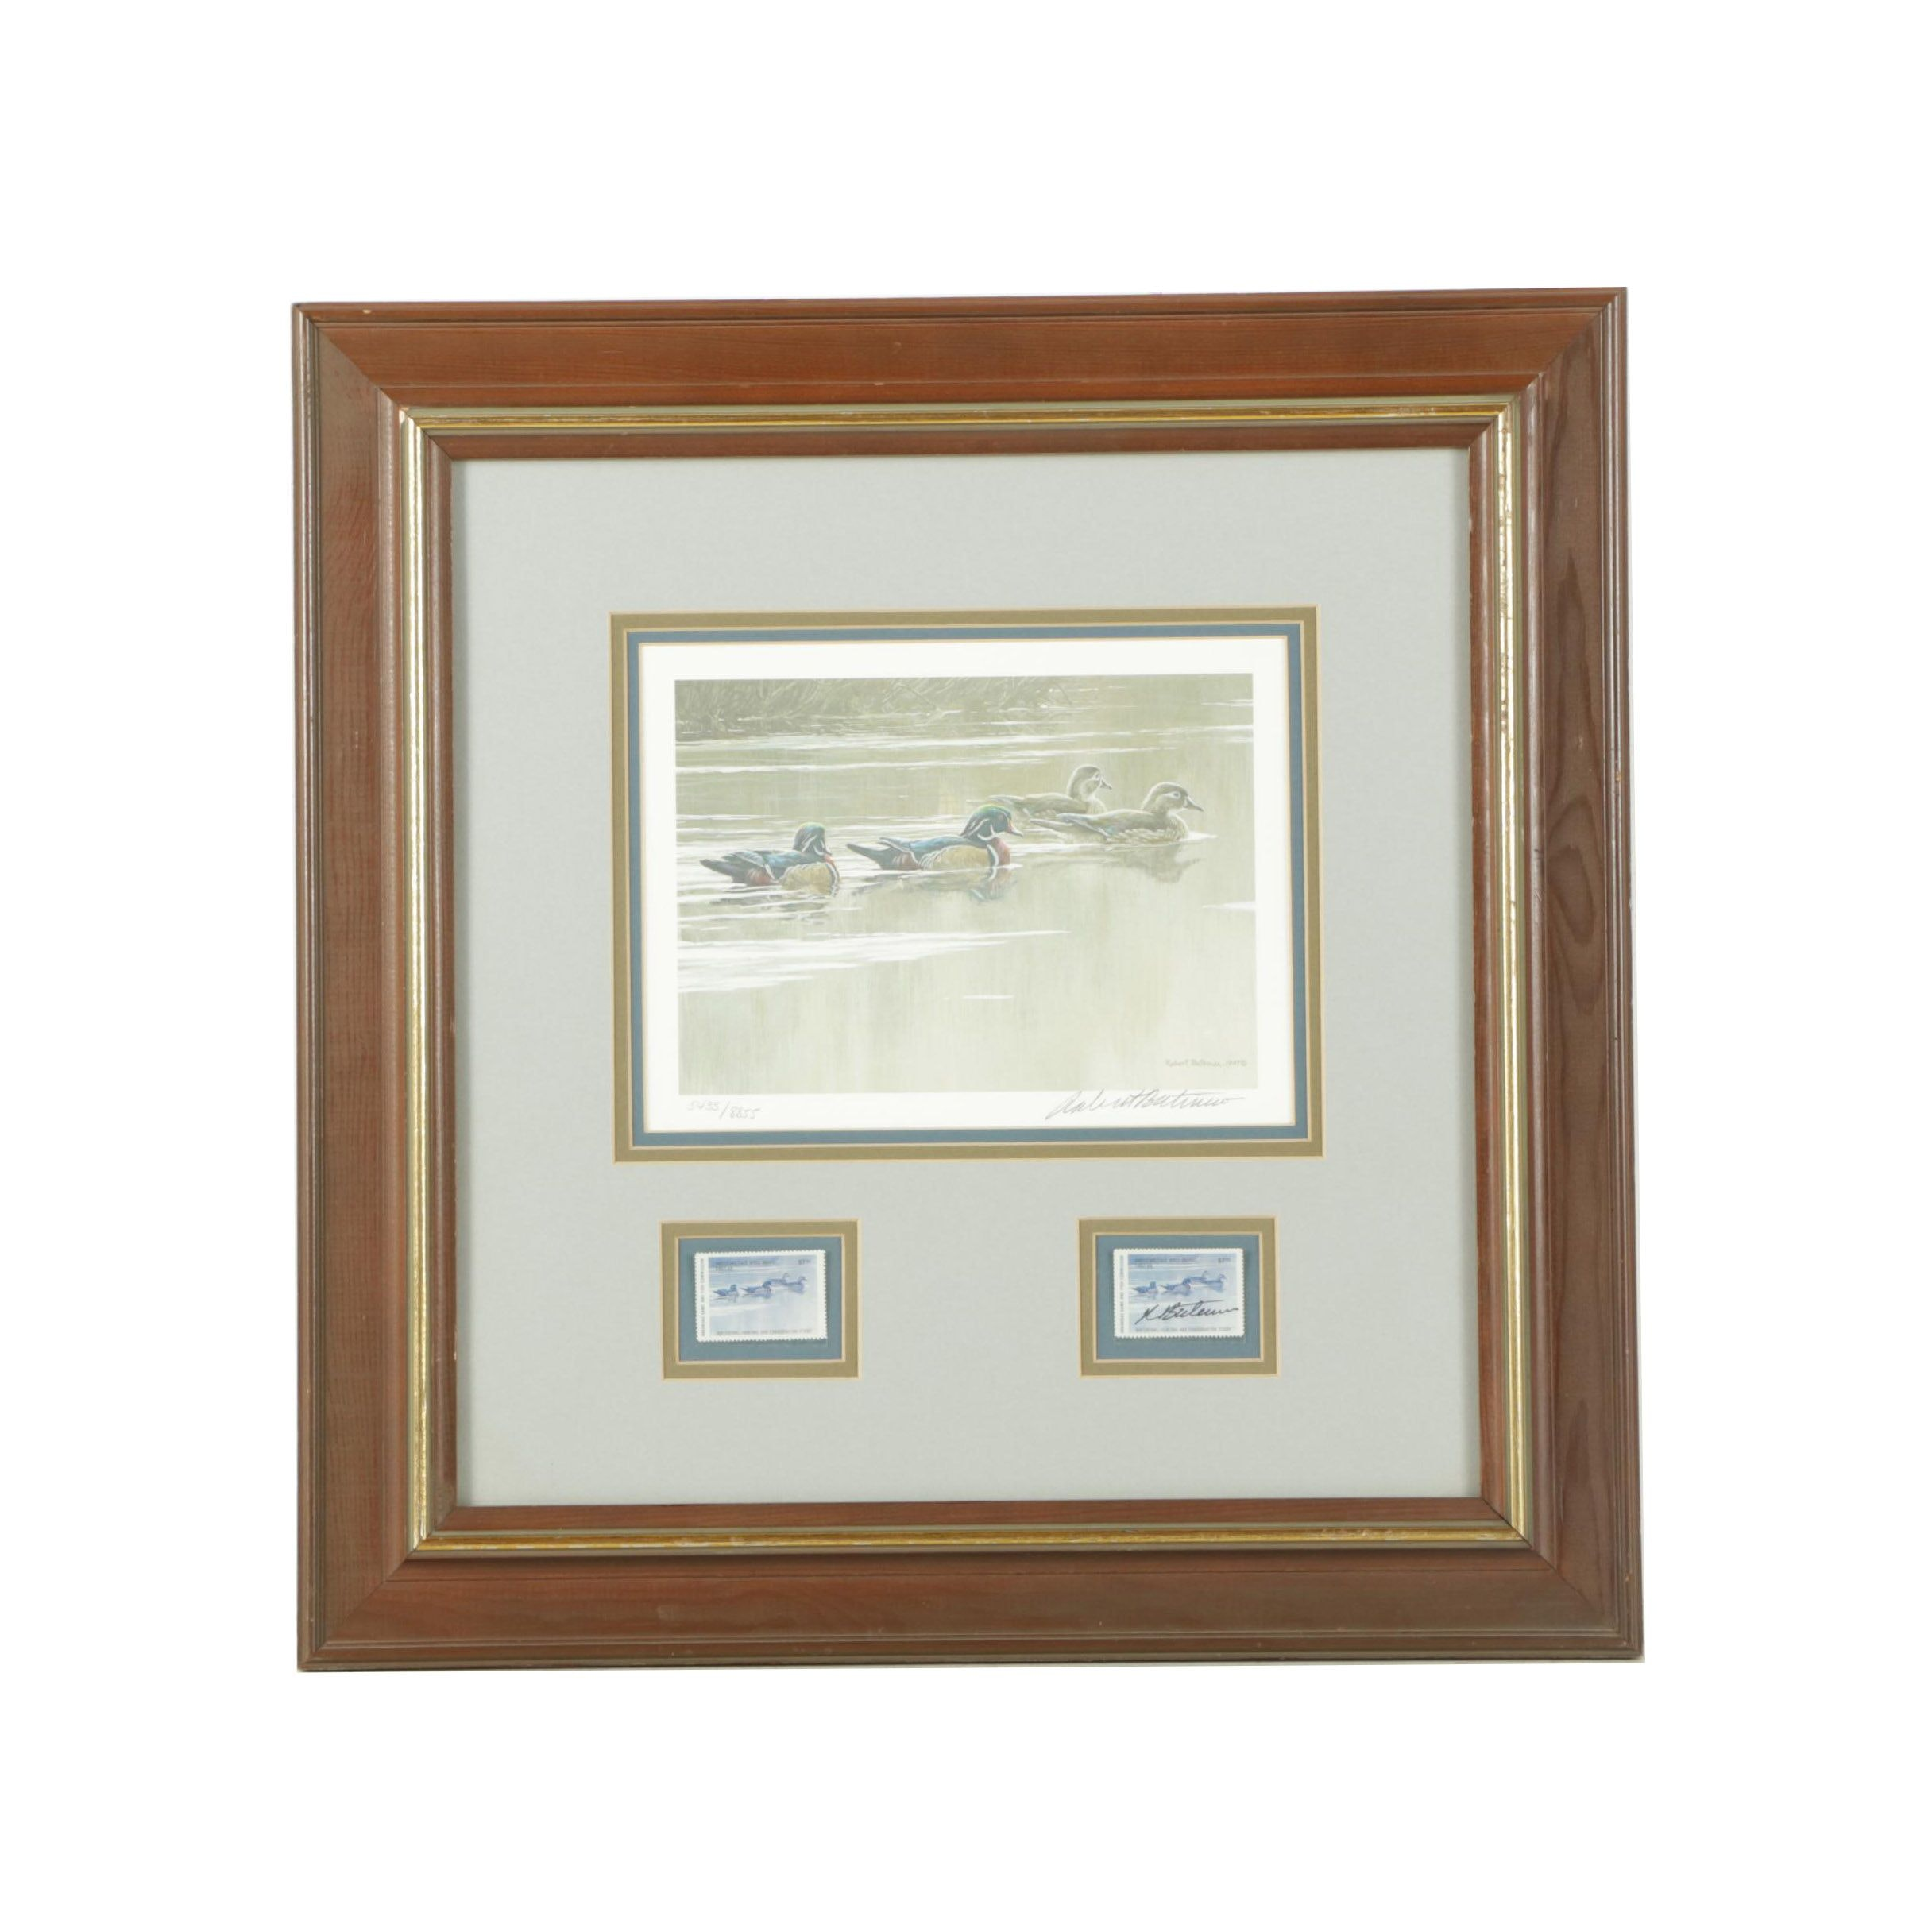 Robert Bateman Limited Edition Offset Lithograph with Stamps